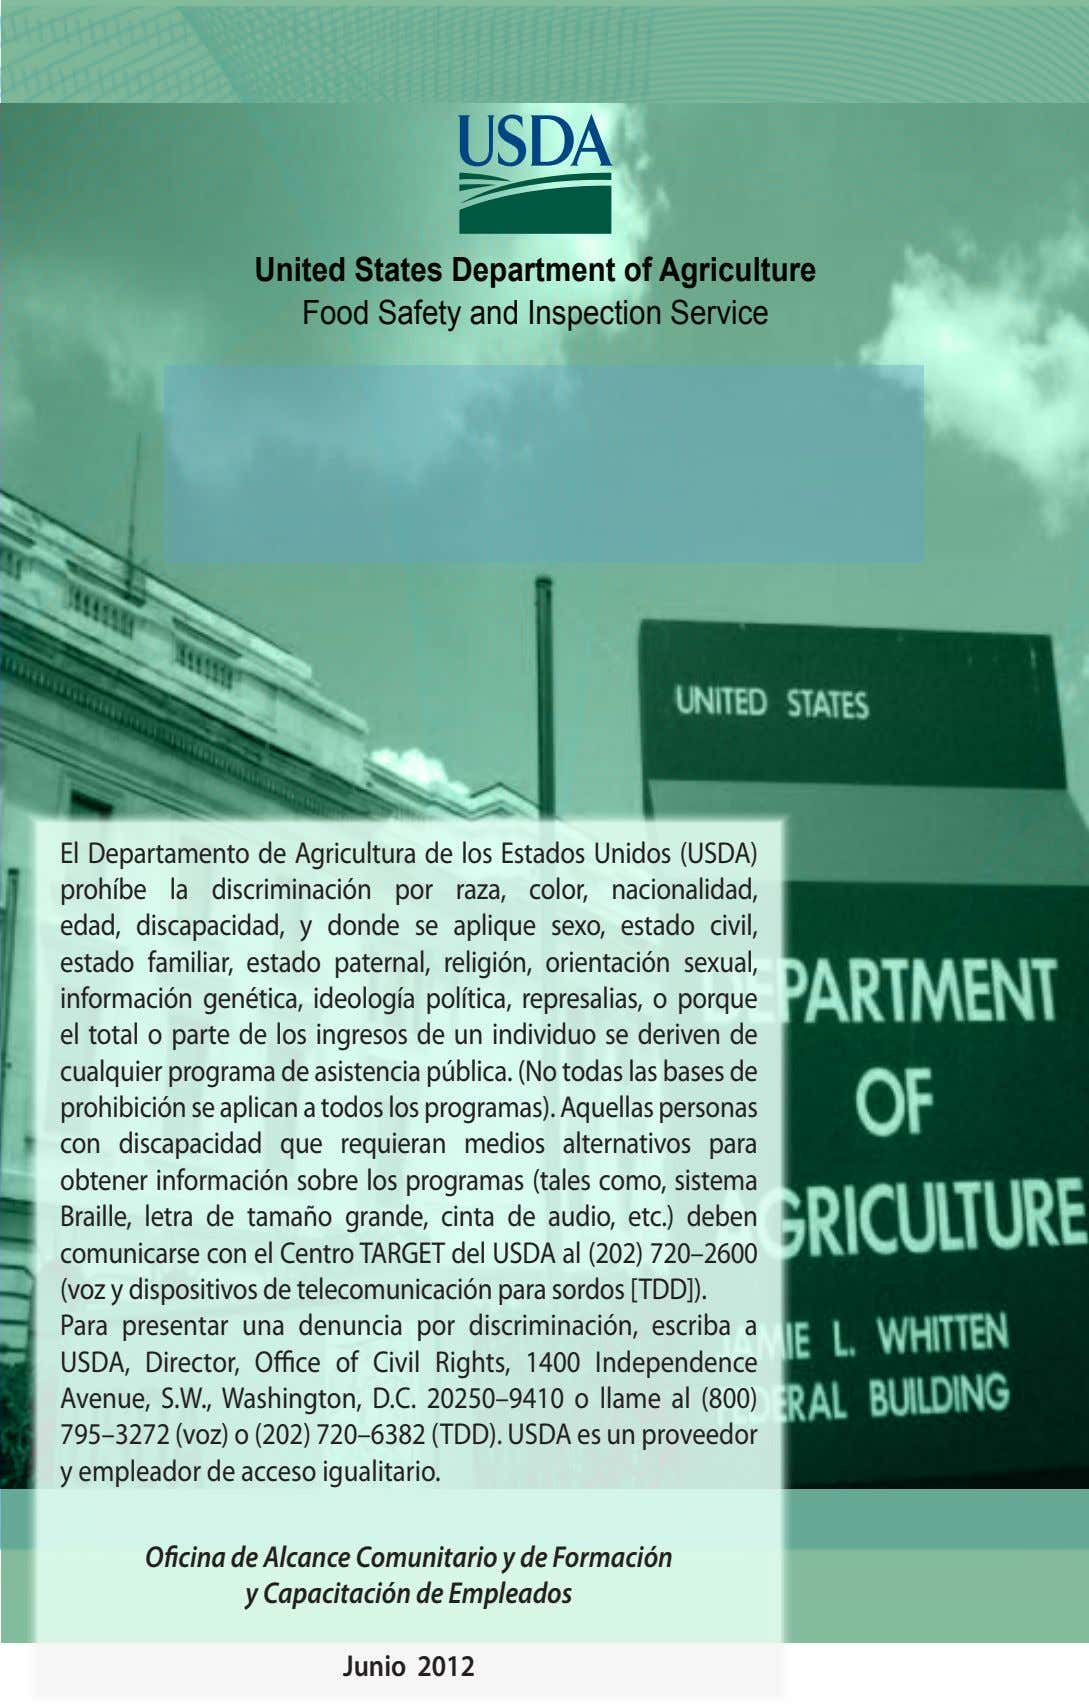 United States Department of Agriculture Food Safety and Inspection Service El Departamento de Agricultura de los